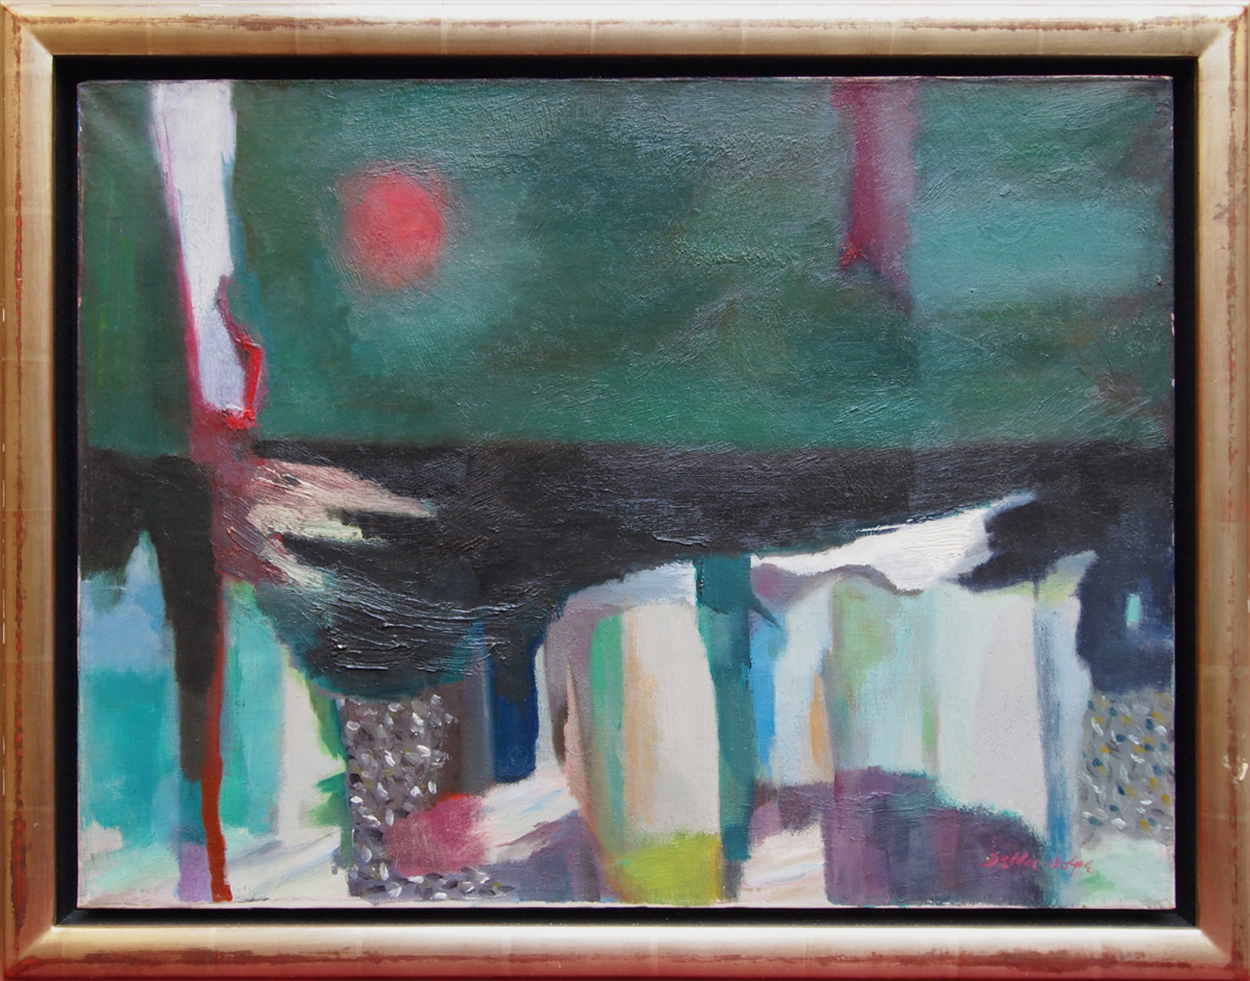 Weather Beaten Docks,   Oil on canvas, 1953-54, 18 x 24 inches